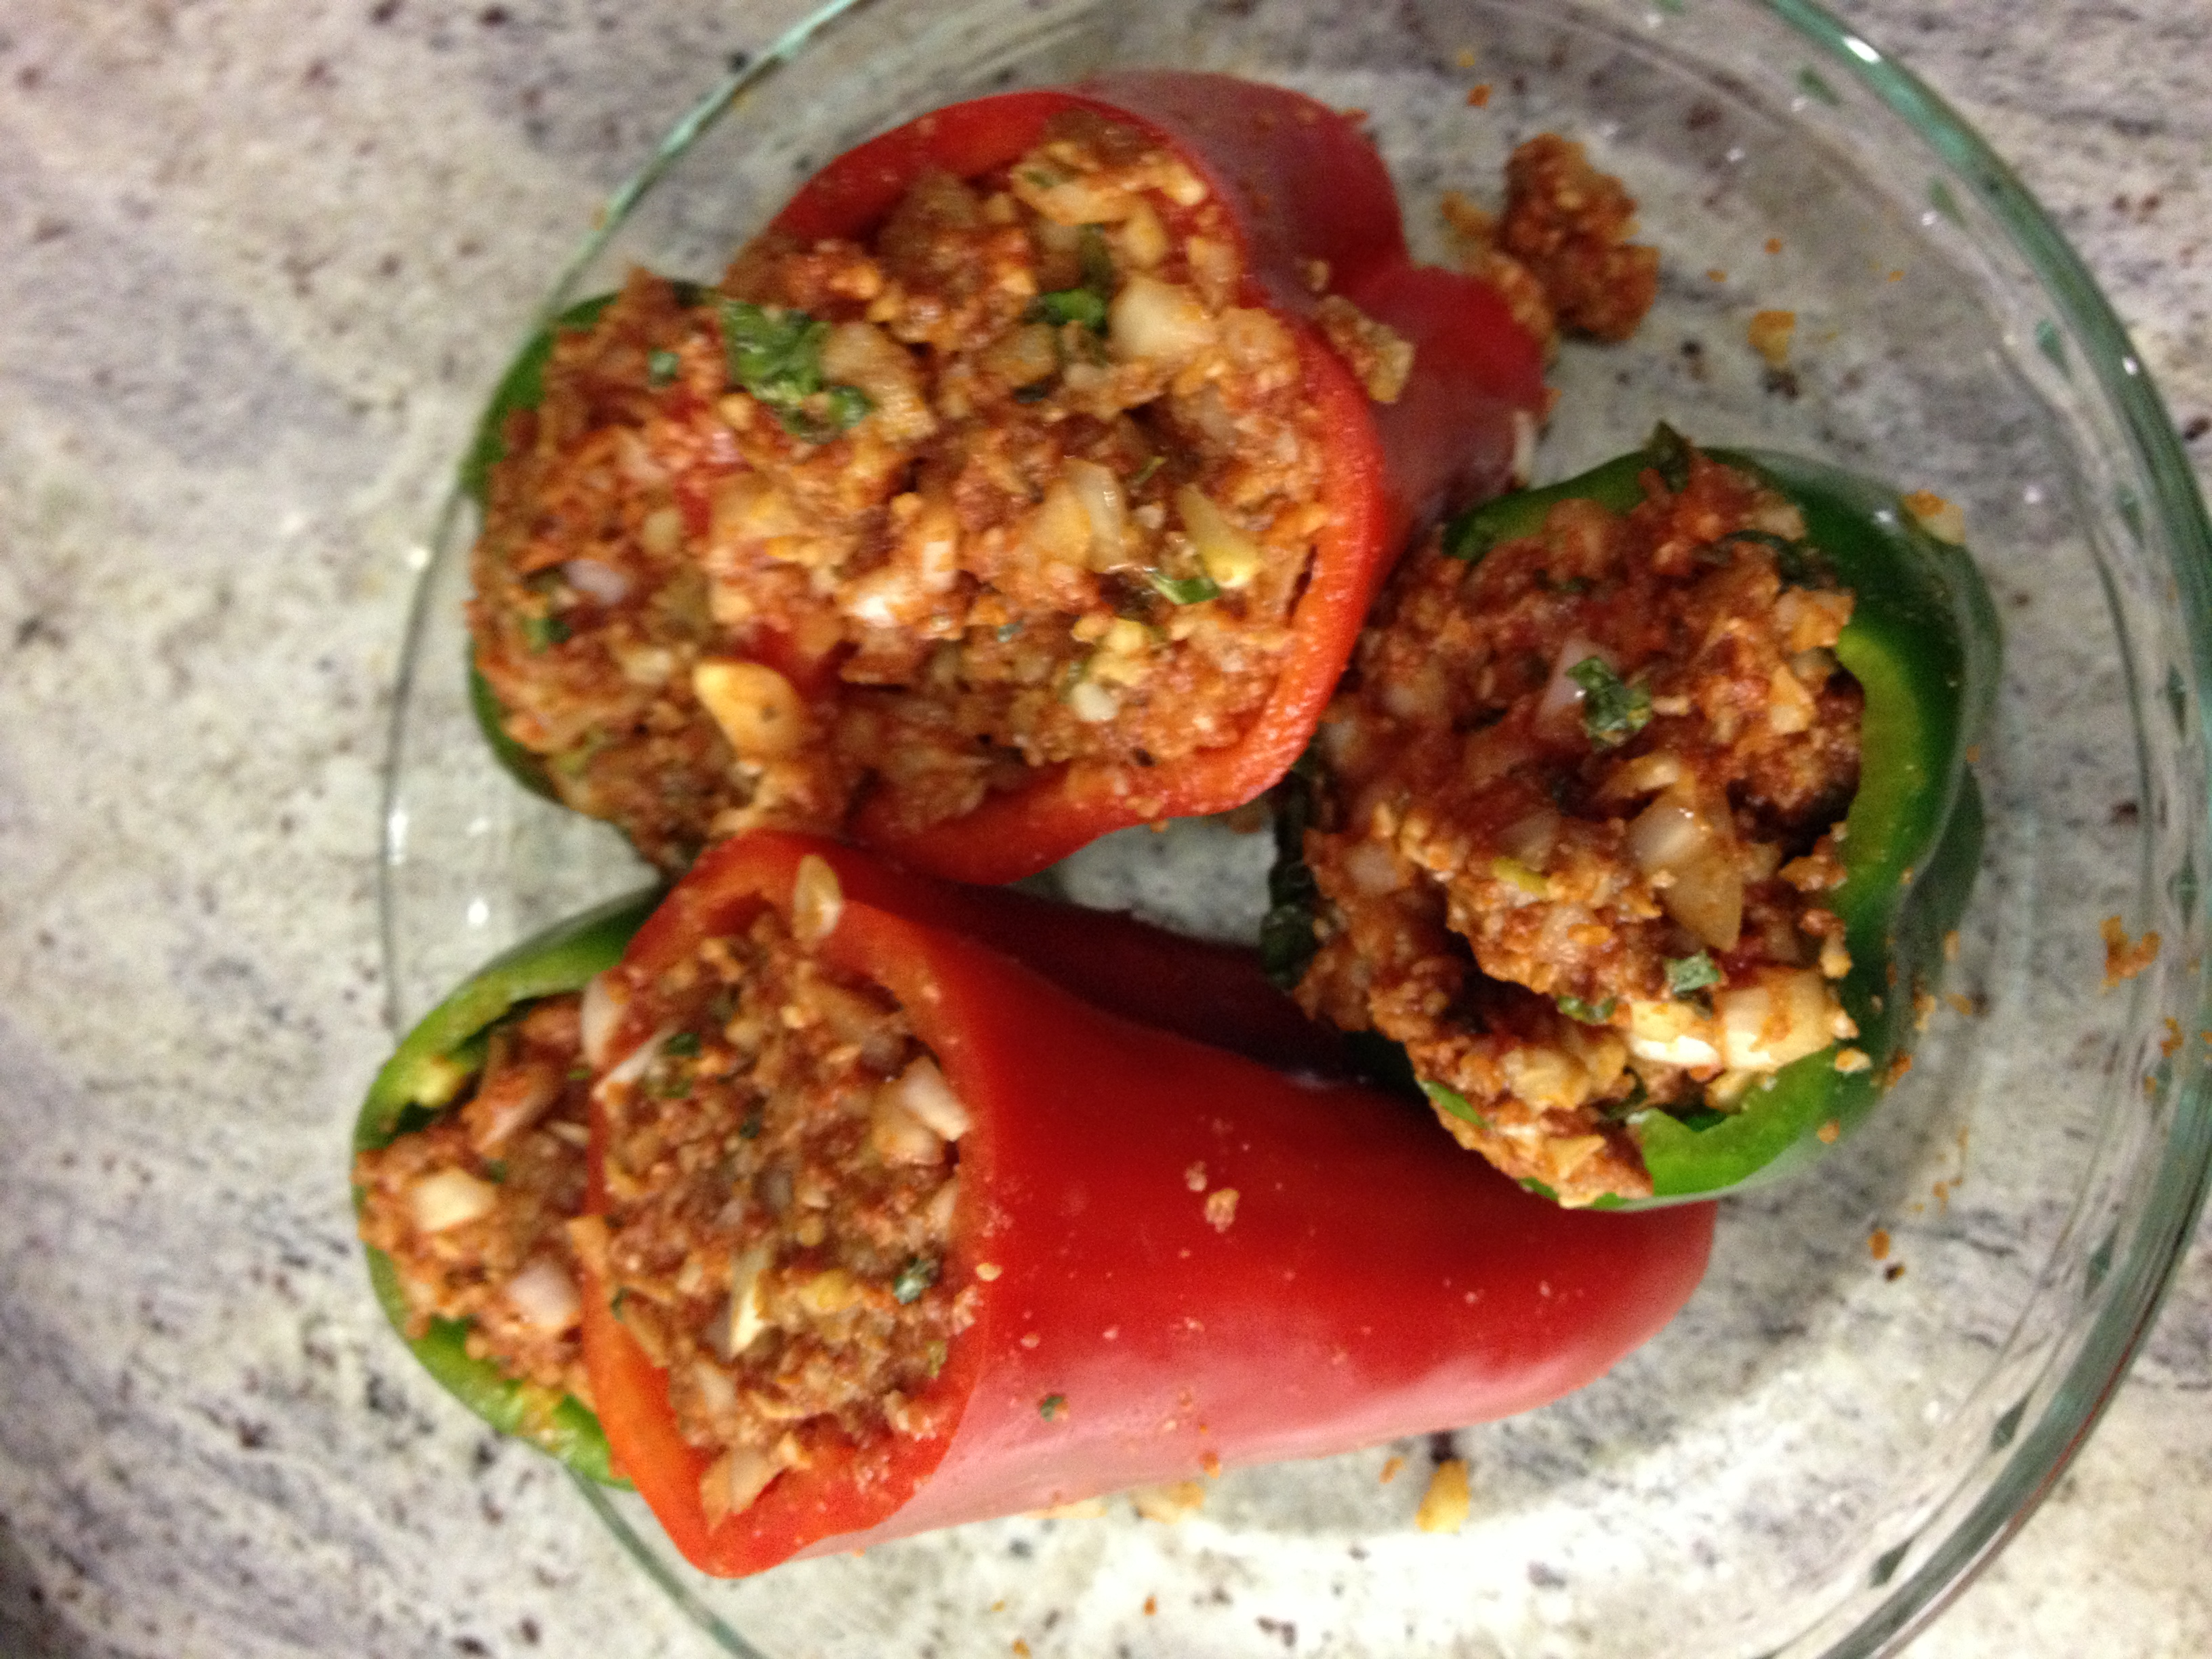 Paleo Stuffed Peppers served on glass plate